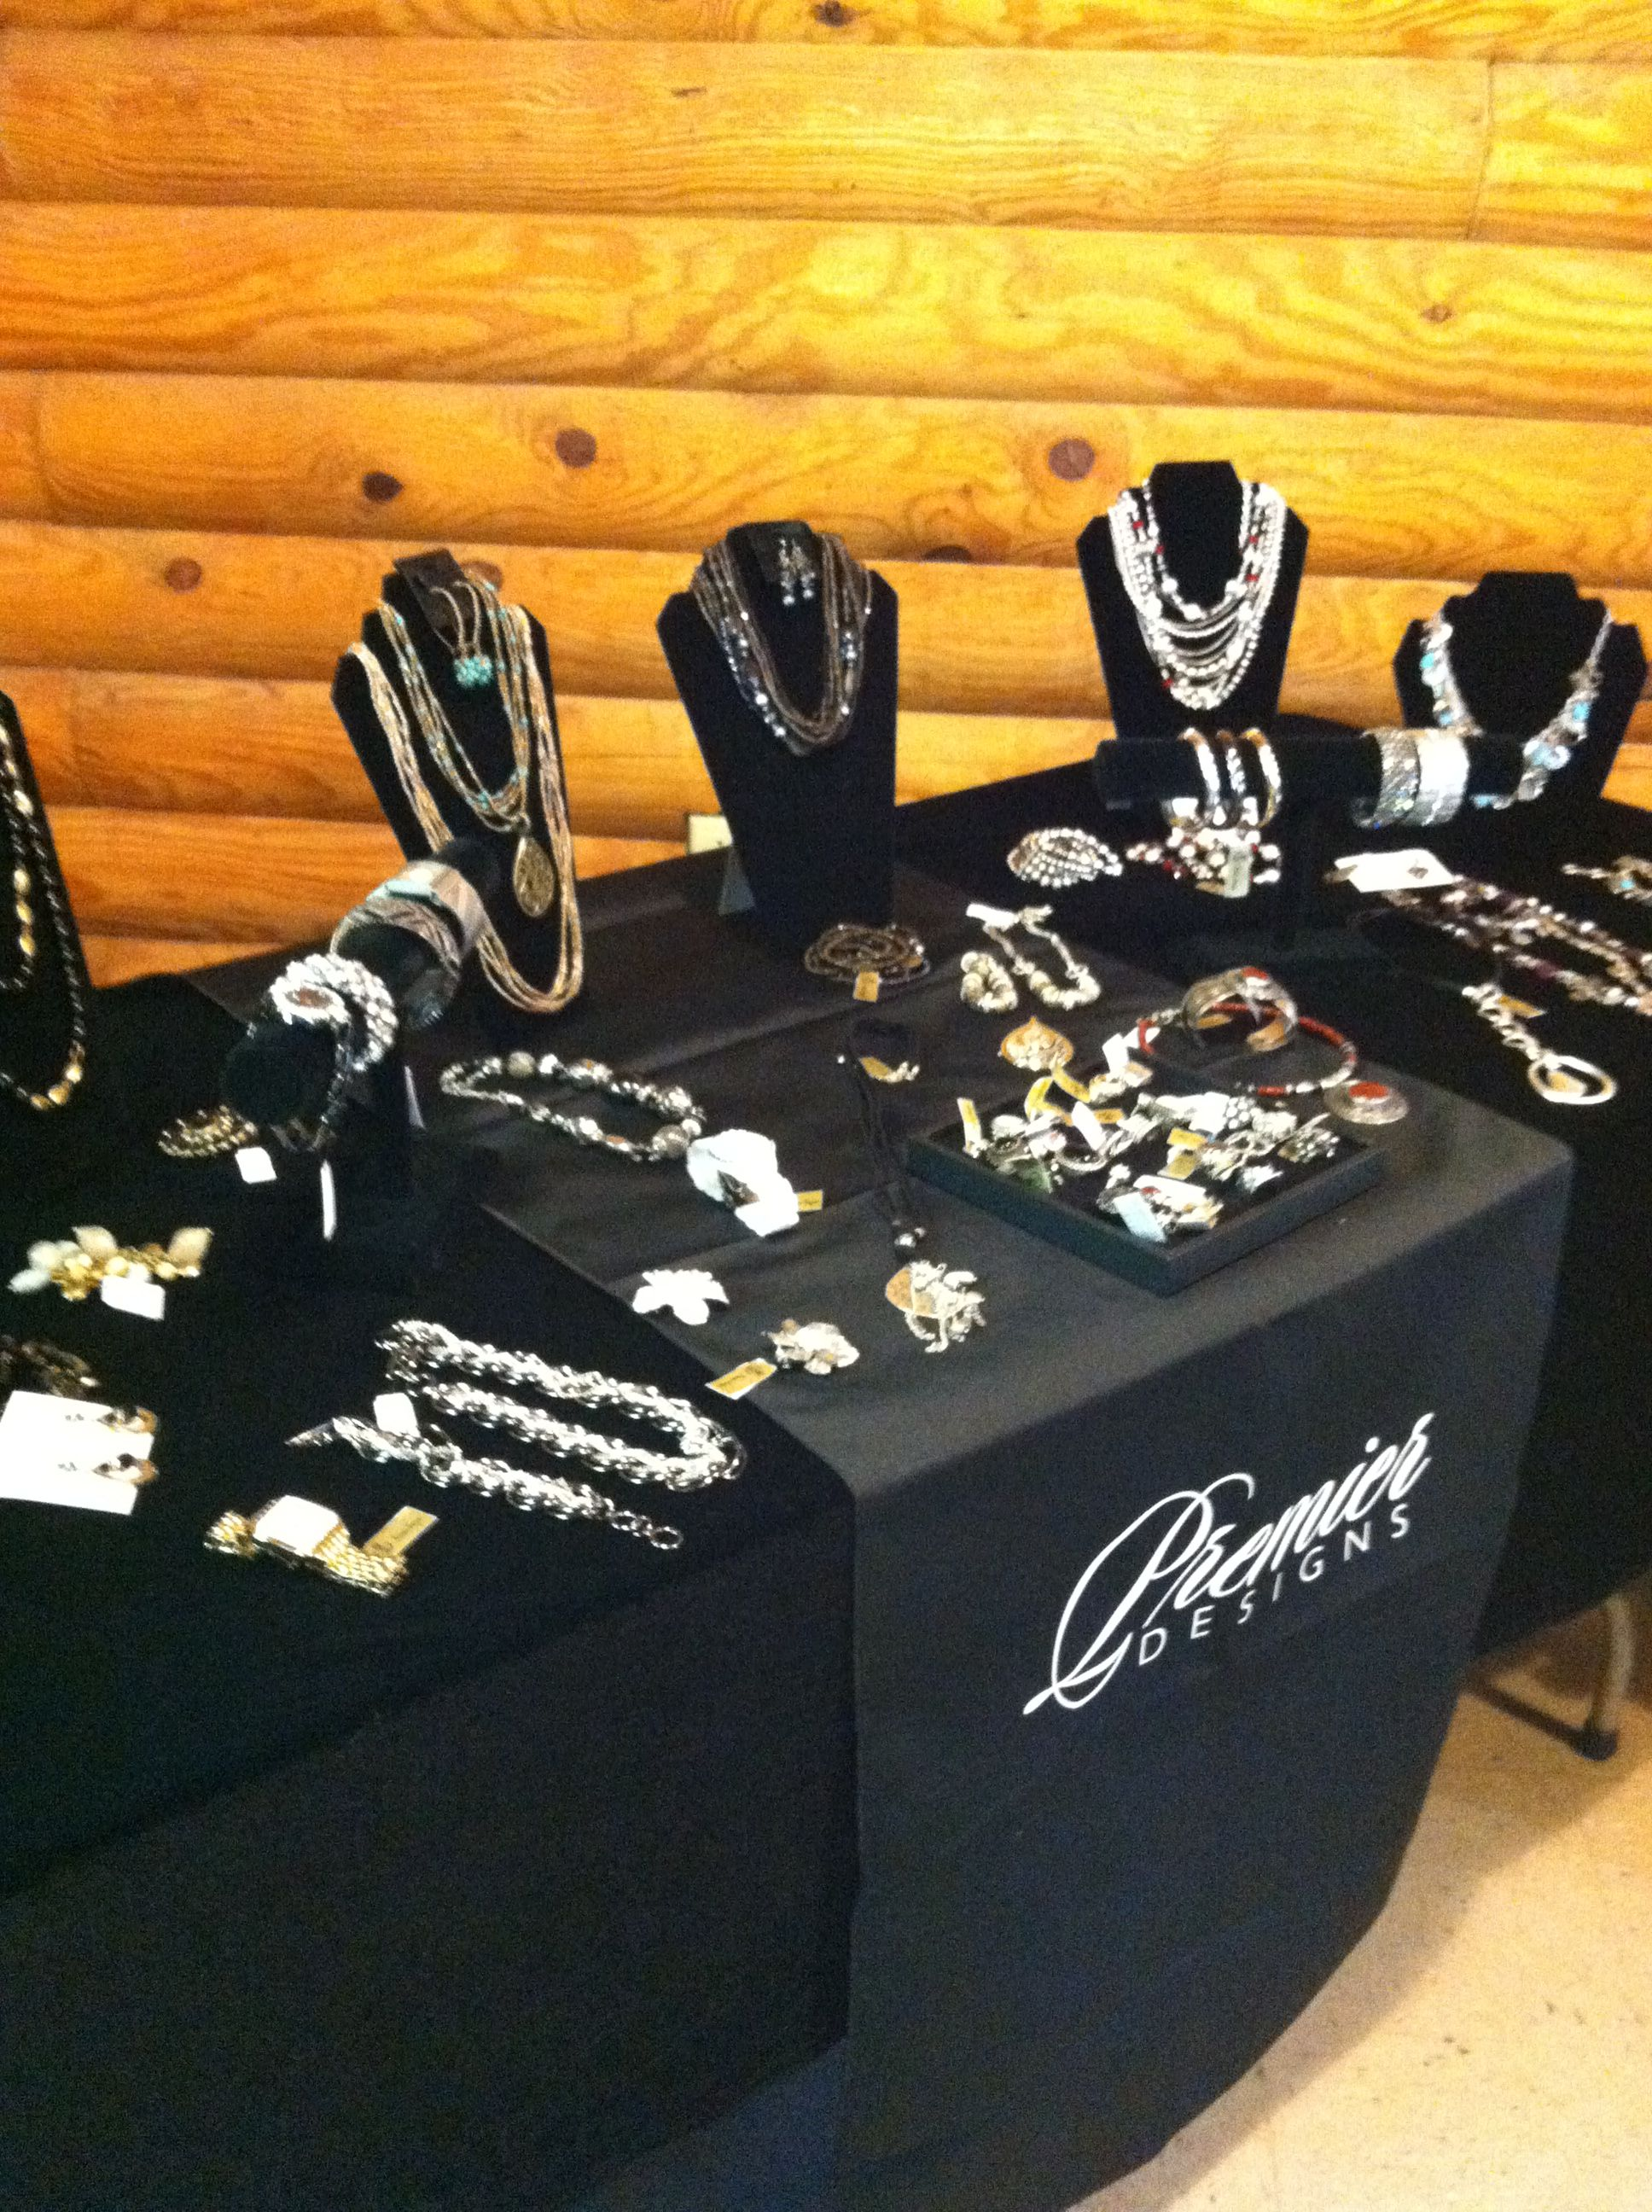 Stand Out Designs Jewelry : The black really makes jewelry stand out and i like